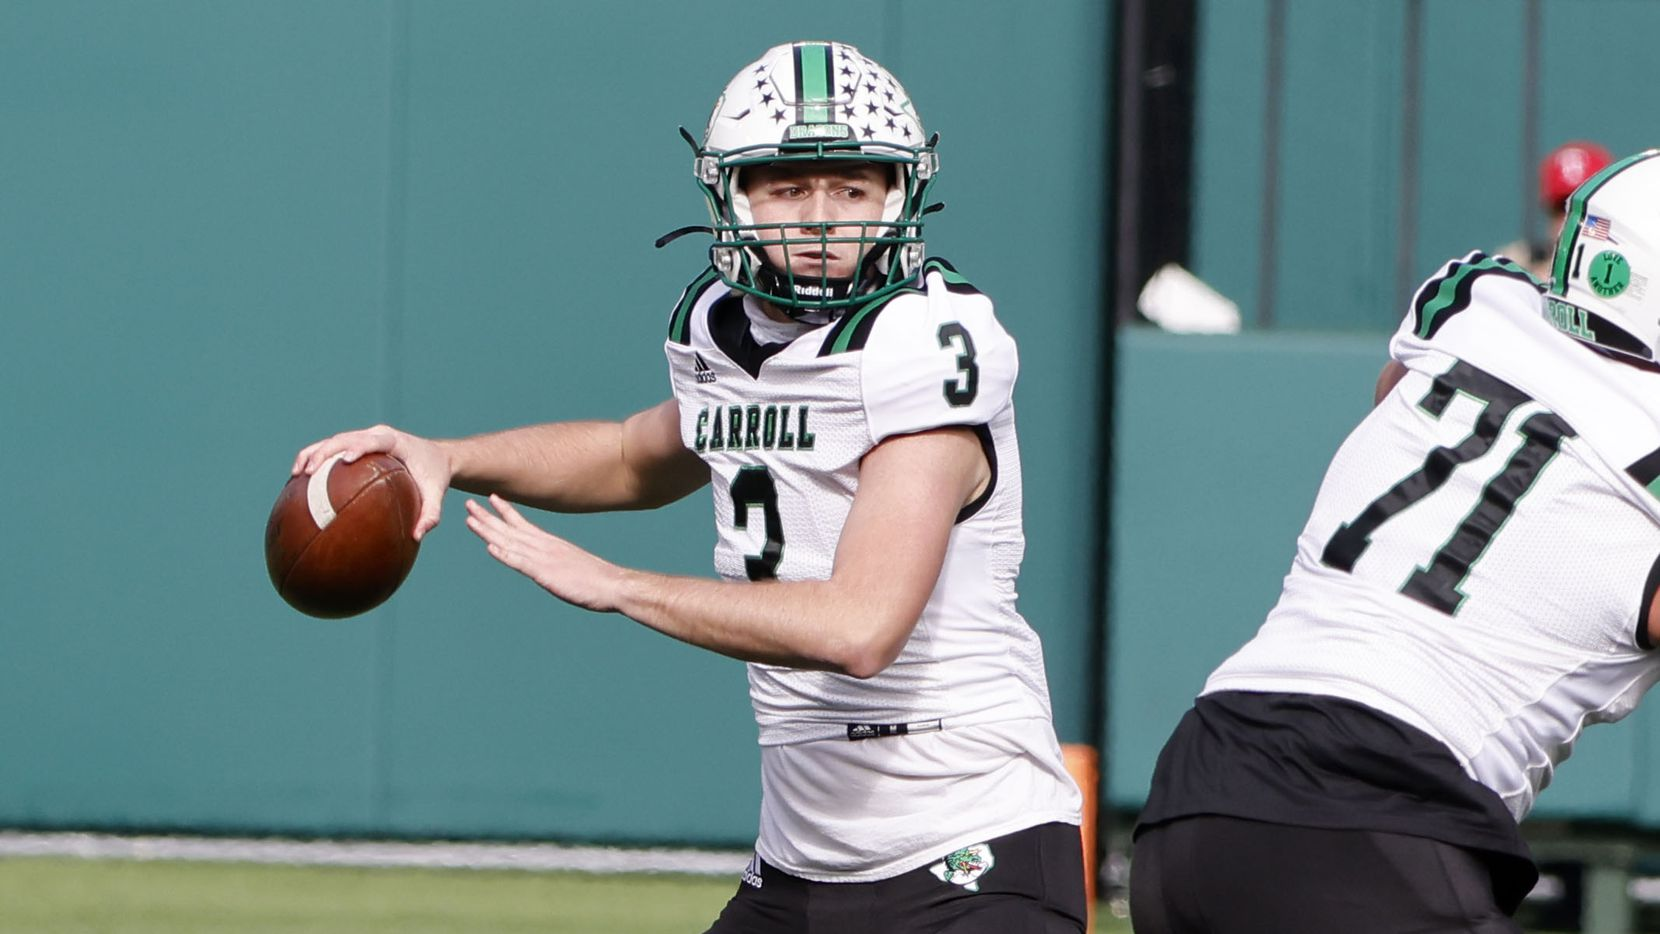 Five-star quarterback Quinn Ewers completed 67% of his passes, threw for 2,442 yards and accounted for 31 touchdowns while leading Southlake Carroll to a state runner-up finish in Class 6A Division I last season. (Michael Ainsworth/Special Contributor)